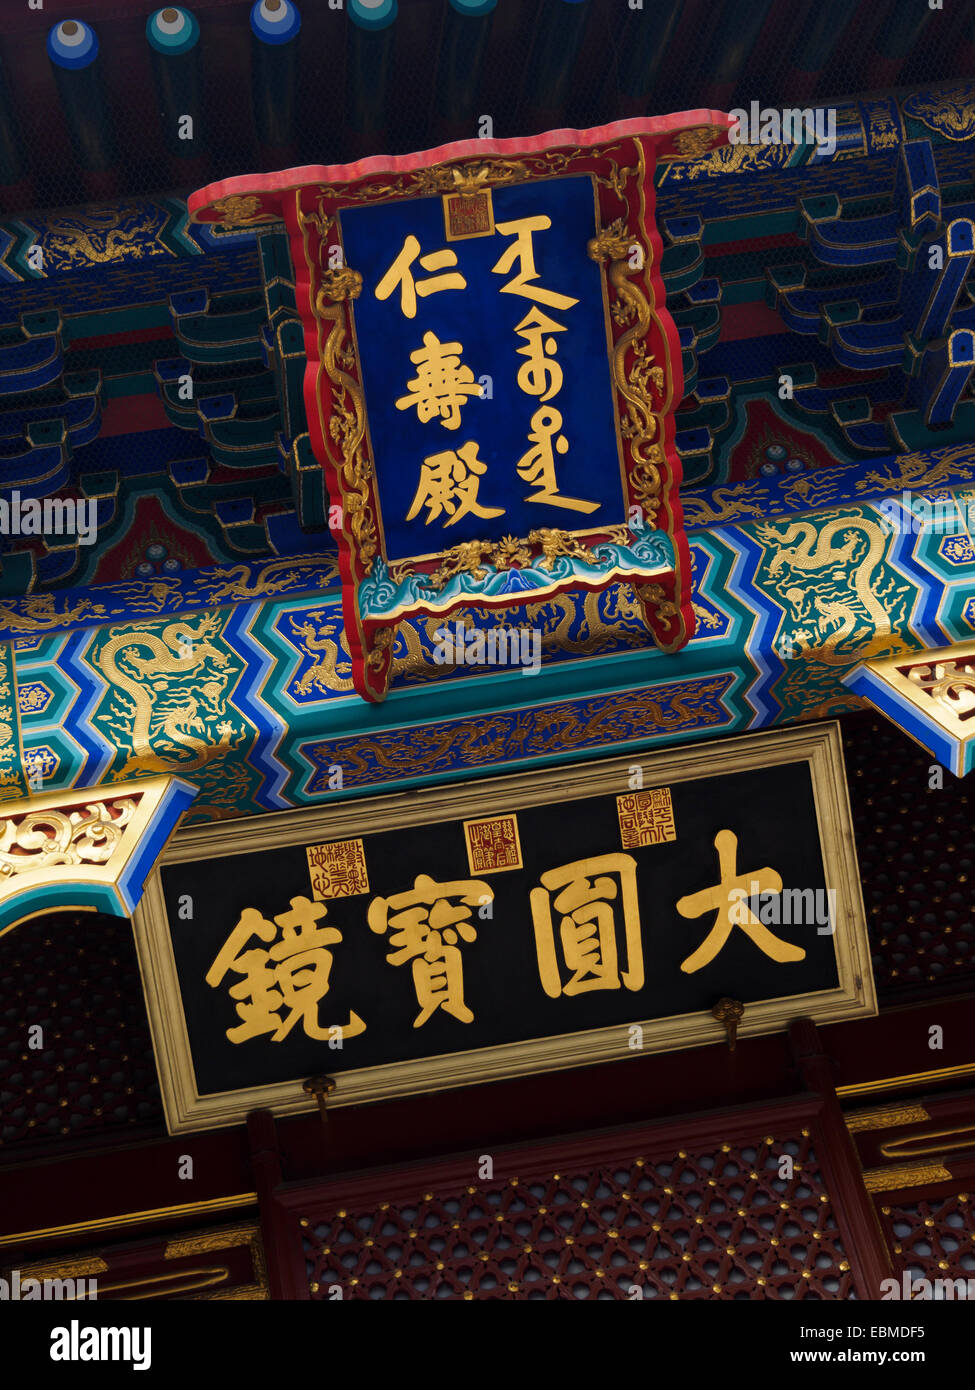 Chinese writings on signs at The Summer Palace in Beijing, China, Asia - Stock Image